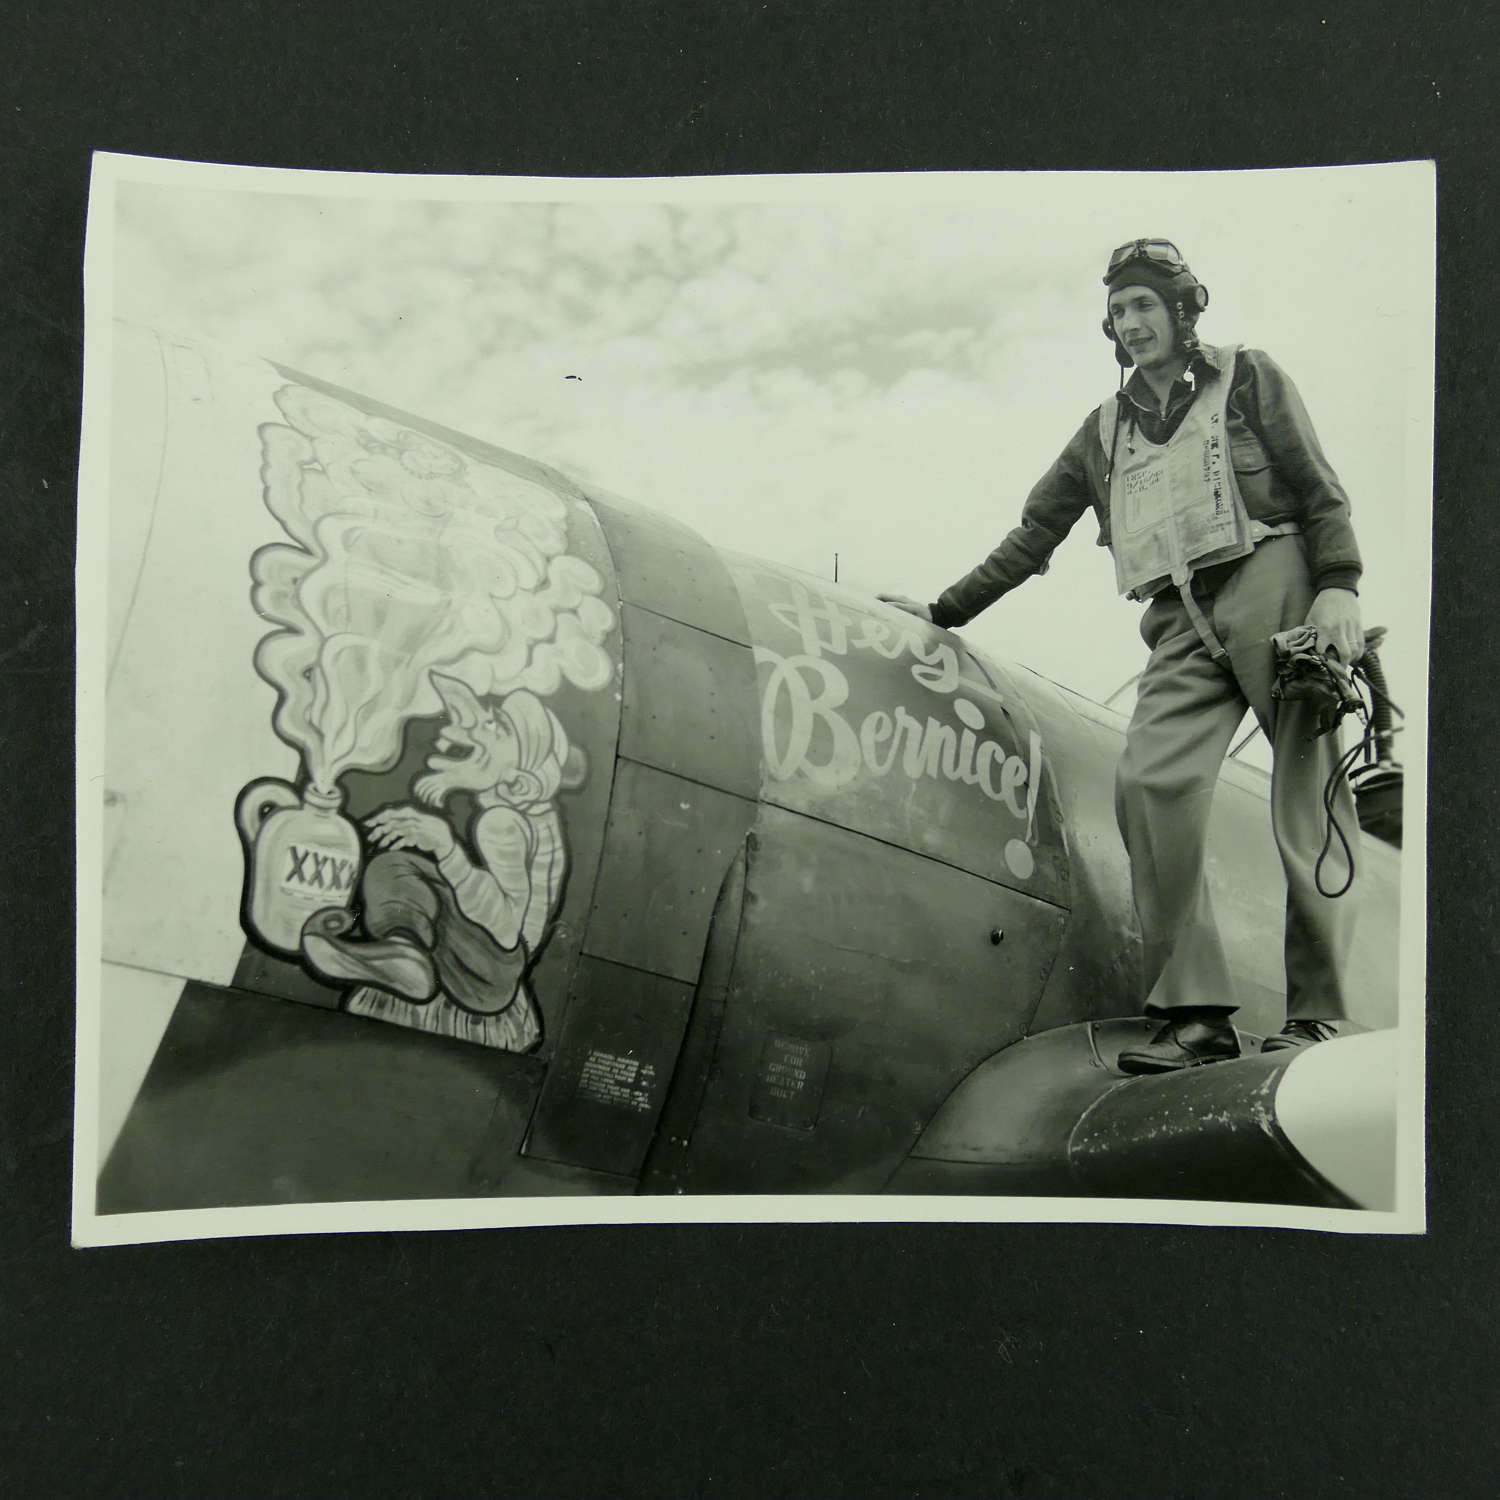 USAAF 9th AAF 366th Fighter Group nose art photo - 'Hey Bernice!